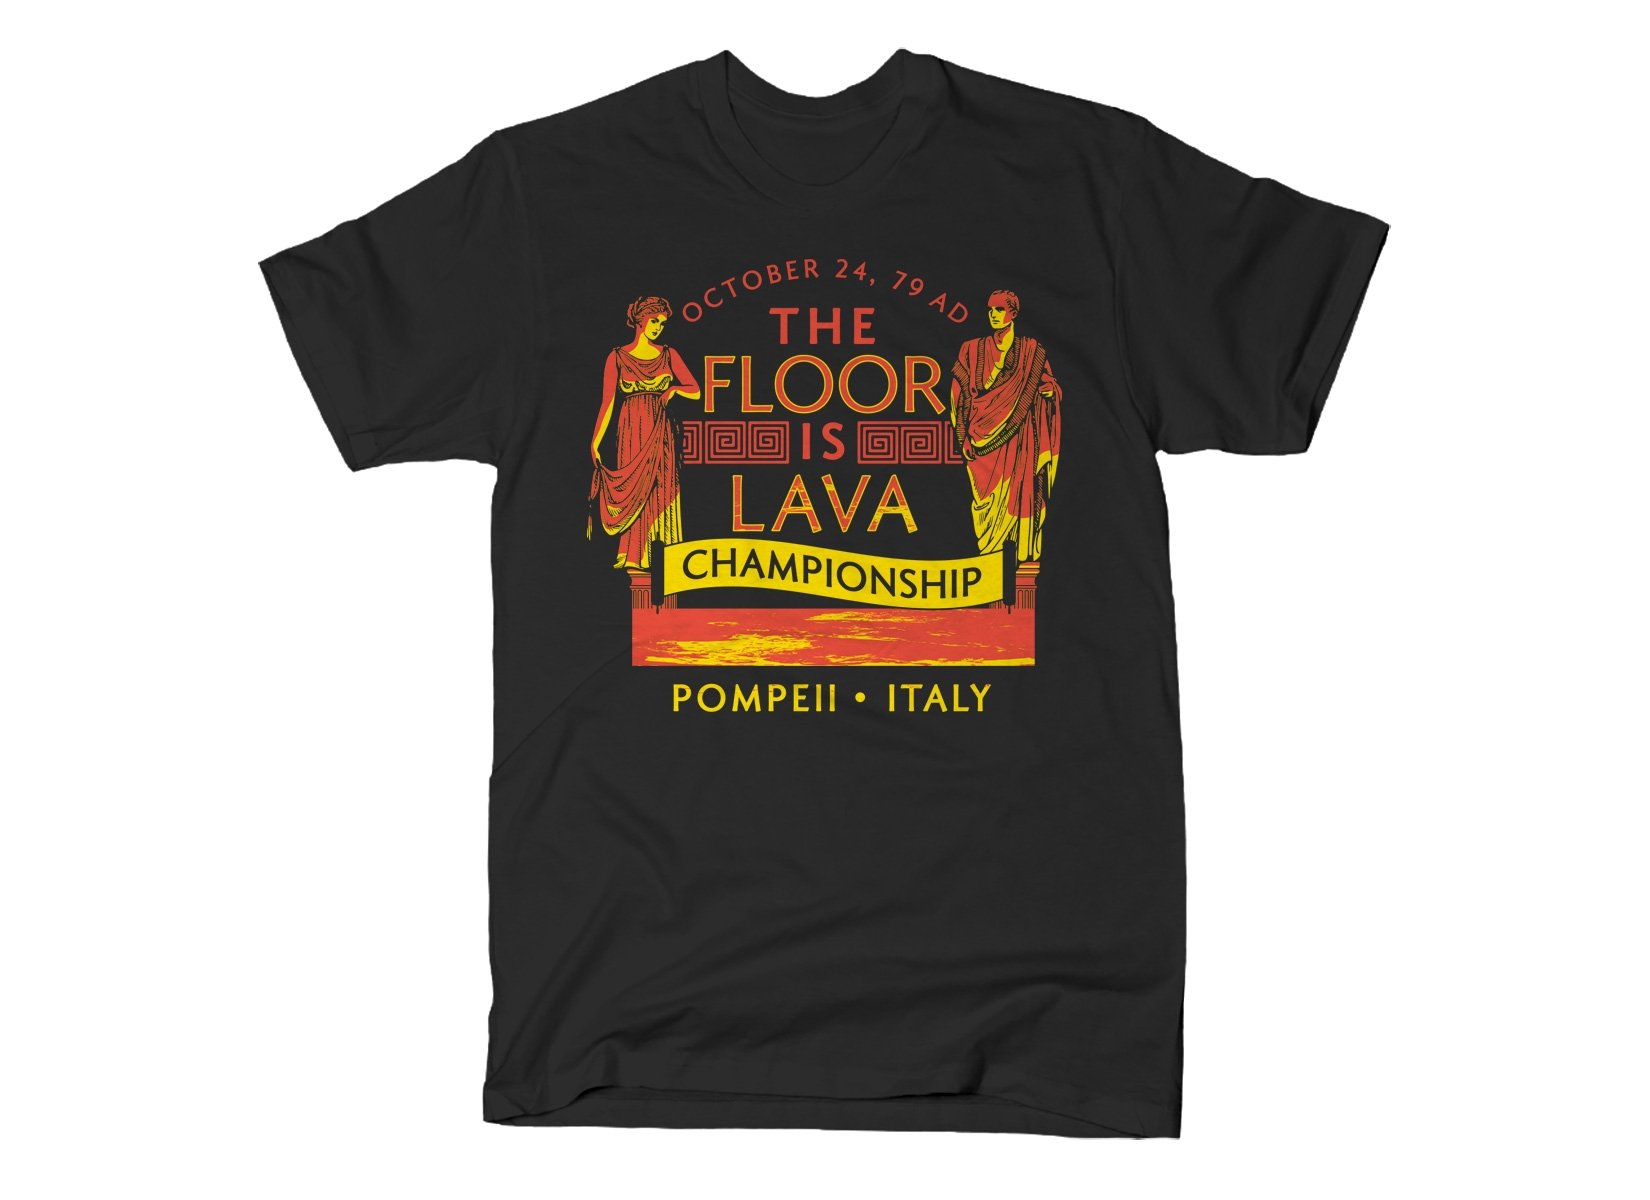 Pompeii Floor is Lava Championship on Mens T-Shirt